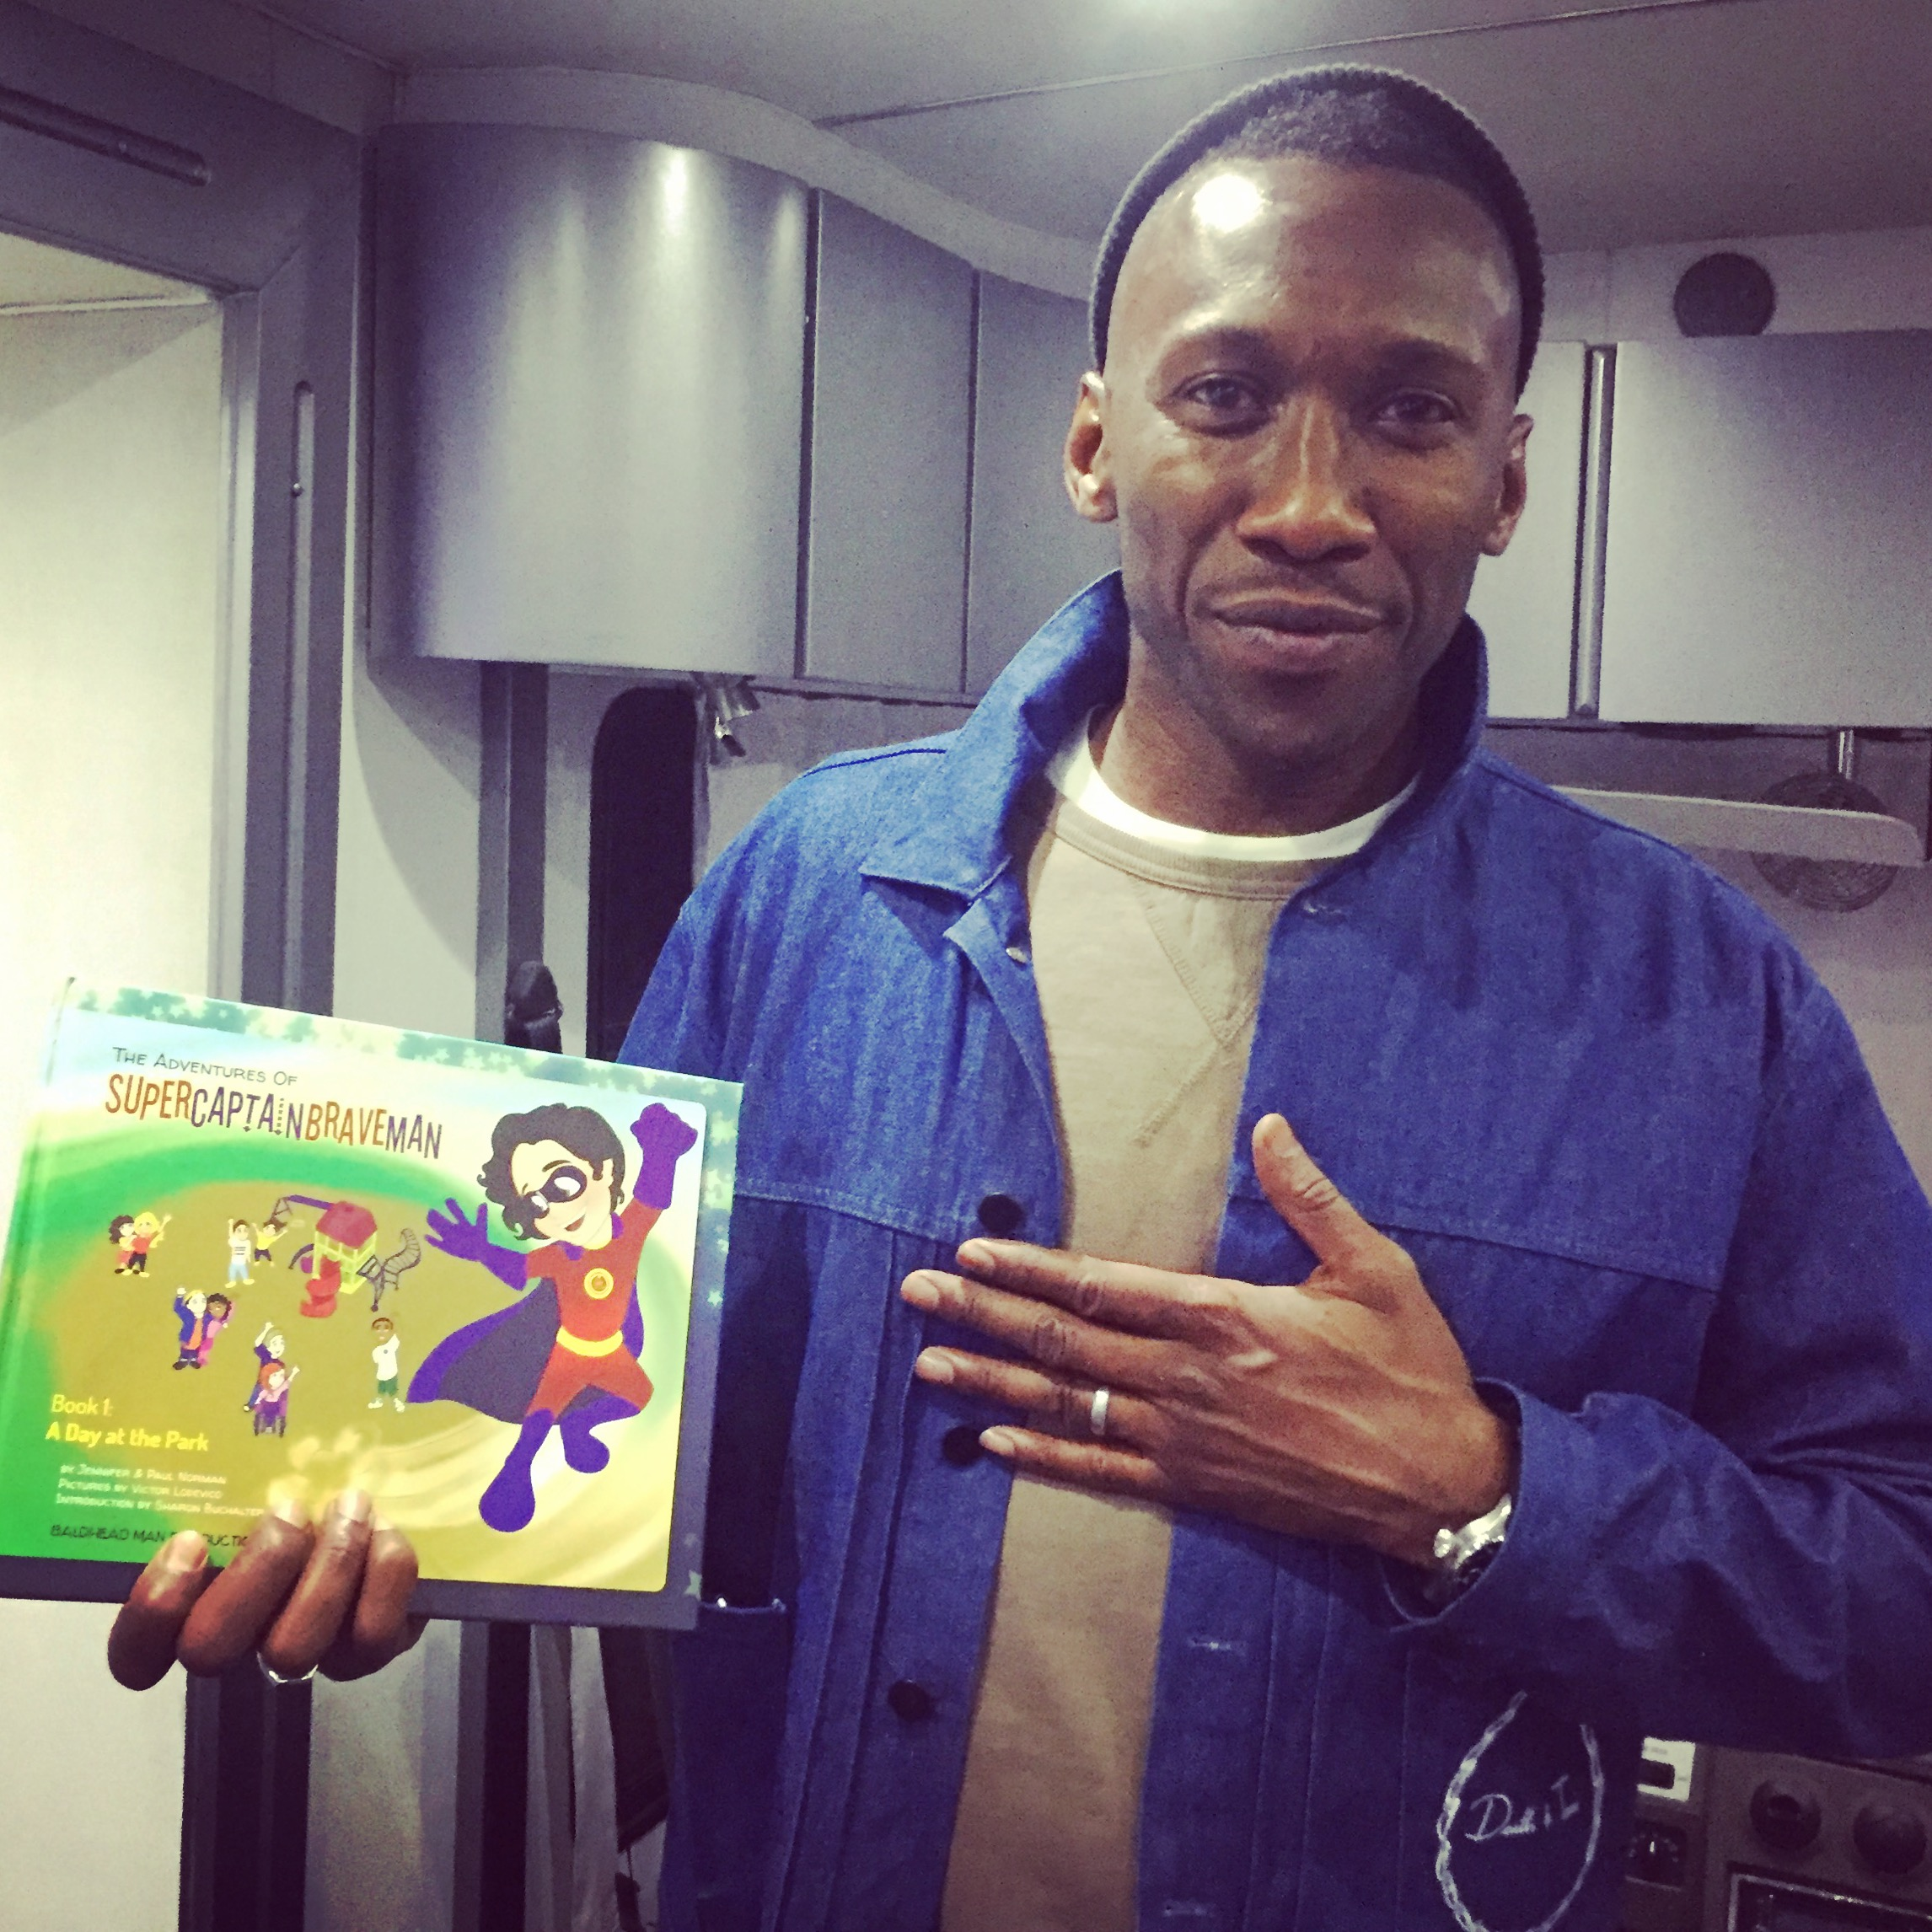 mahershala ali is touched by the message of supercaptainbraveman